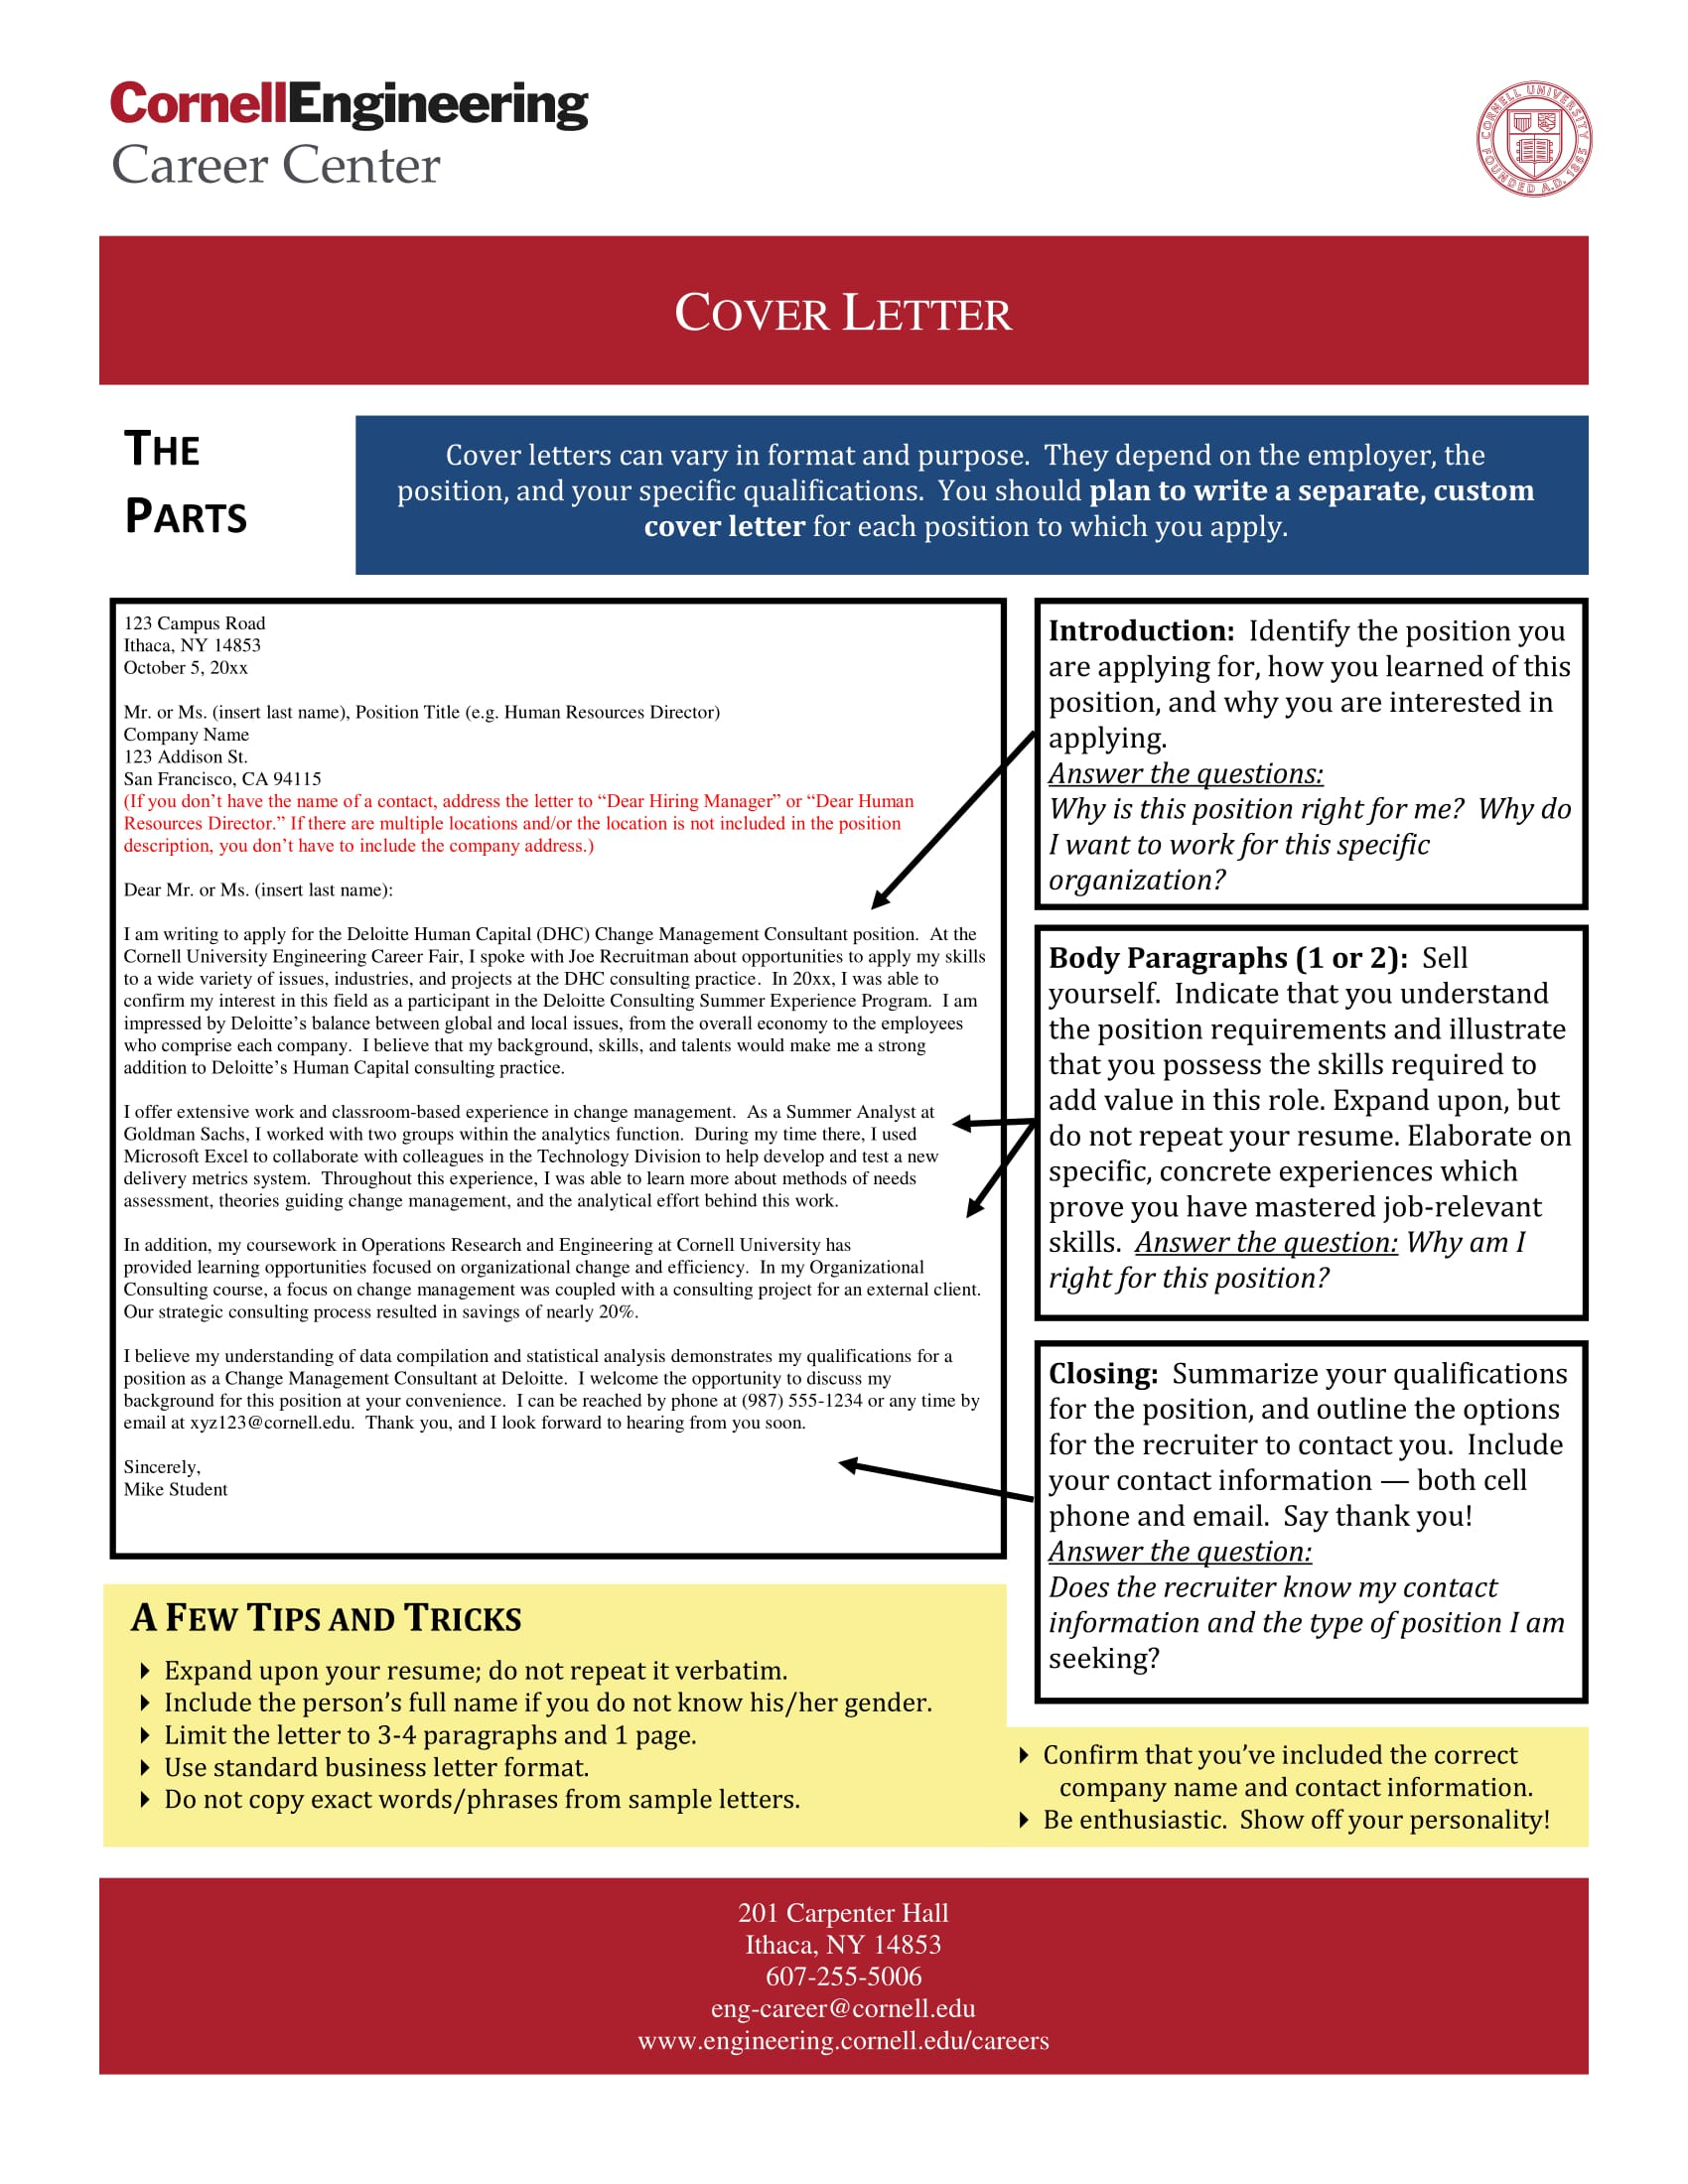 Attention Grabbing Cover Letter Mt